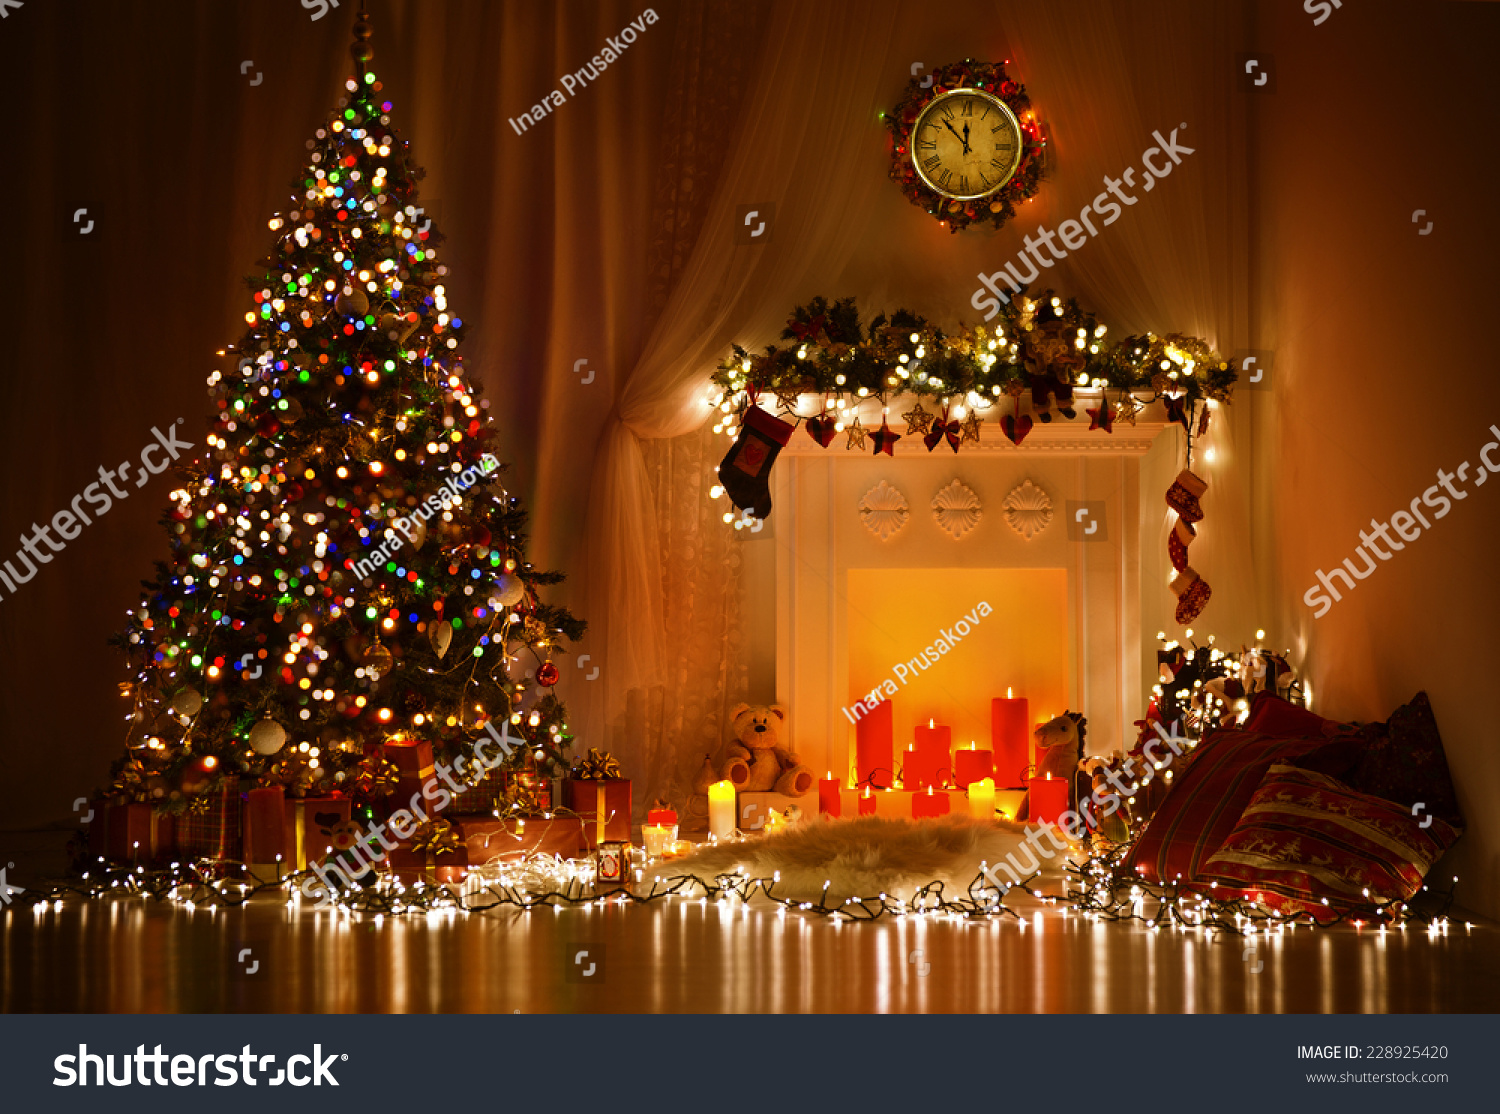 Christmas Room Interior Design Xmas Tree Decorated By Lights Presents Gifts Toys Candles And